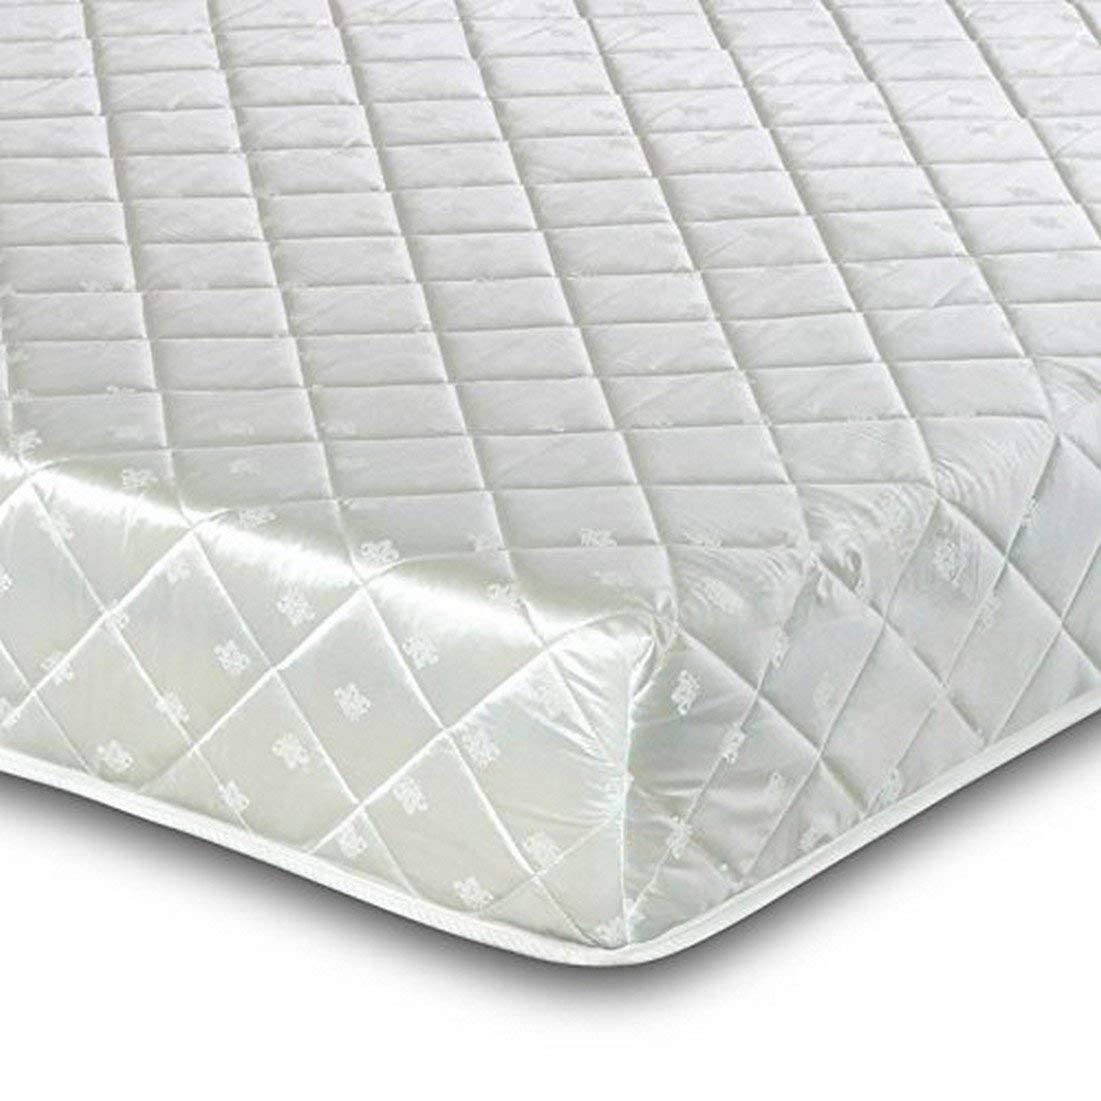 Visco Therapy Deluxe Memory Coil Rolled Mattress with Pillows, White, Double